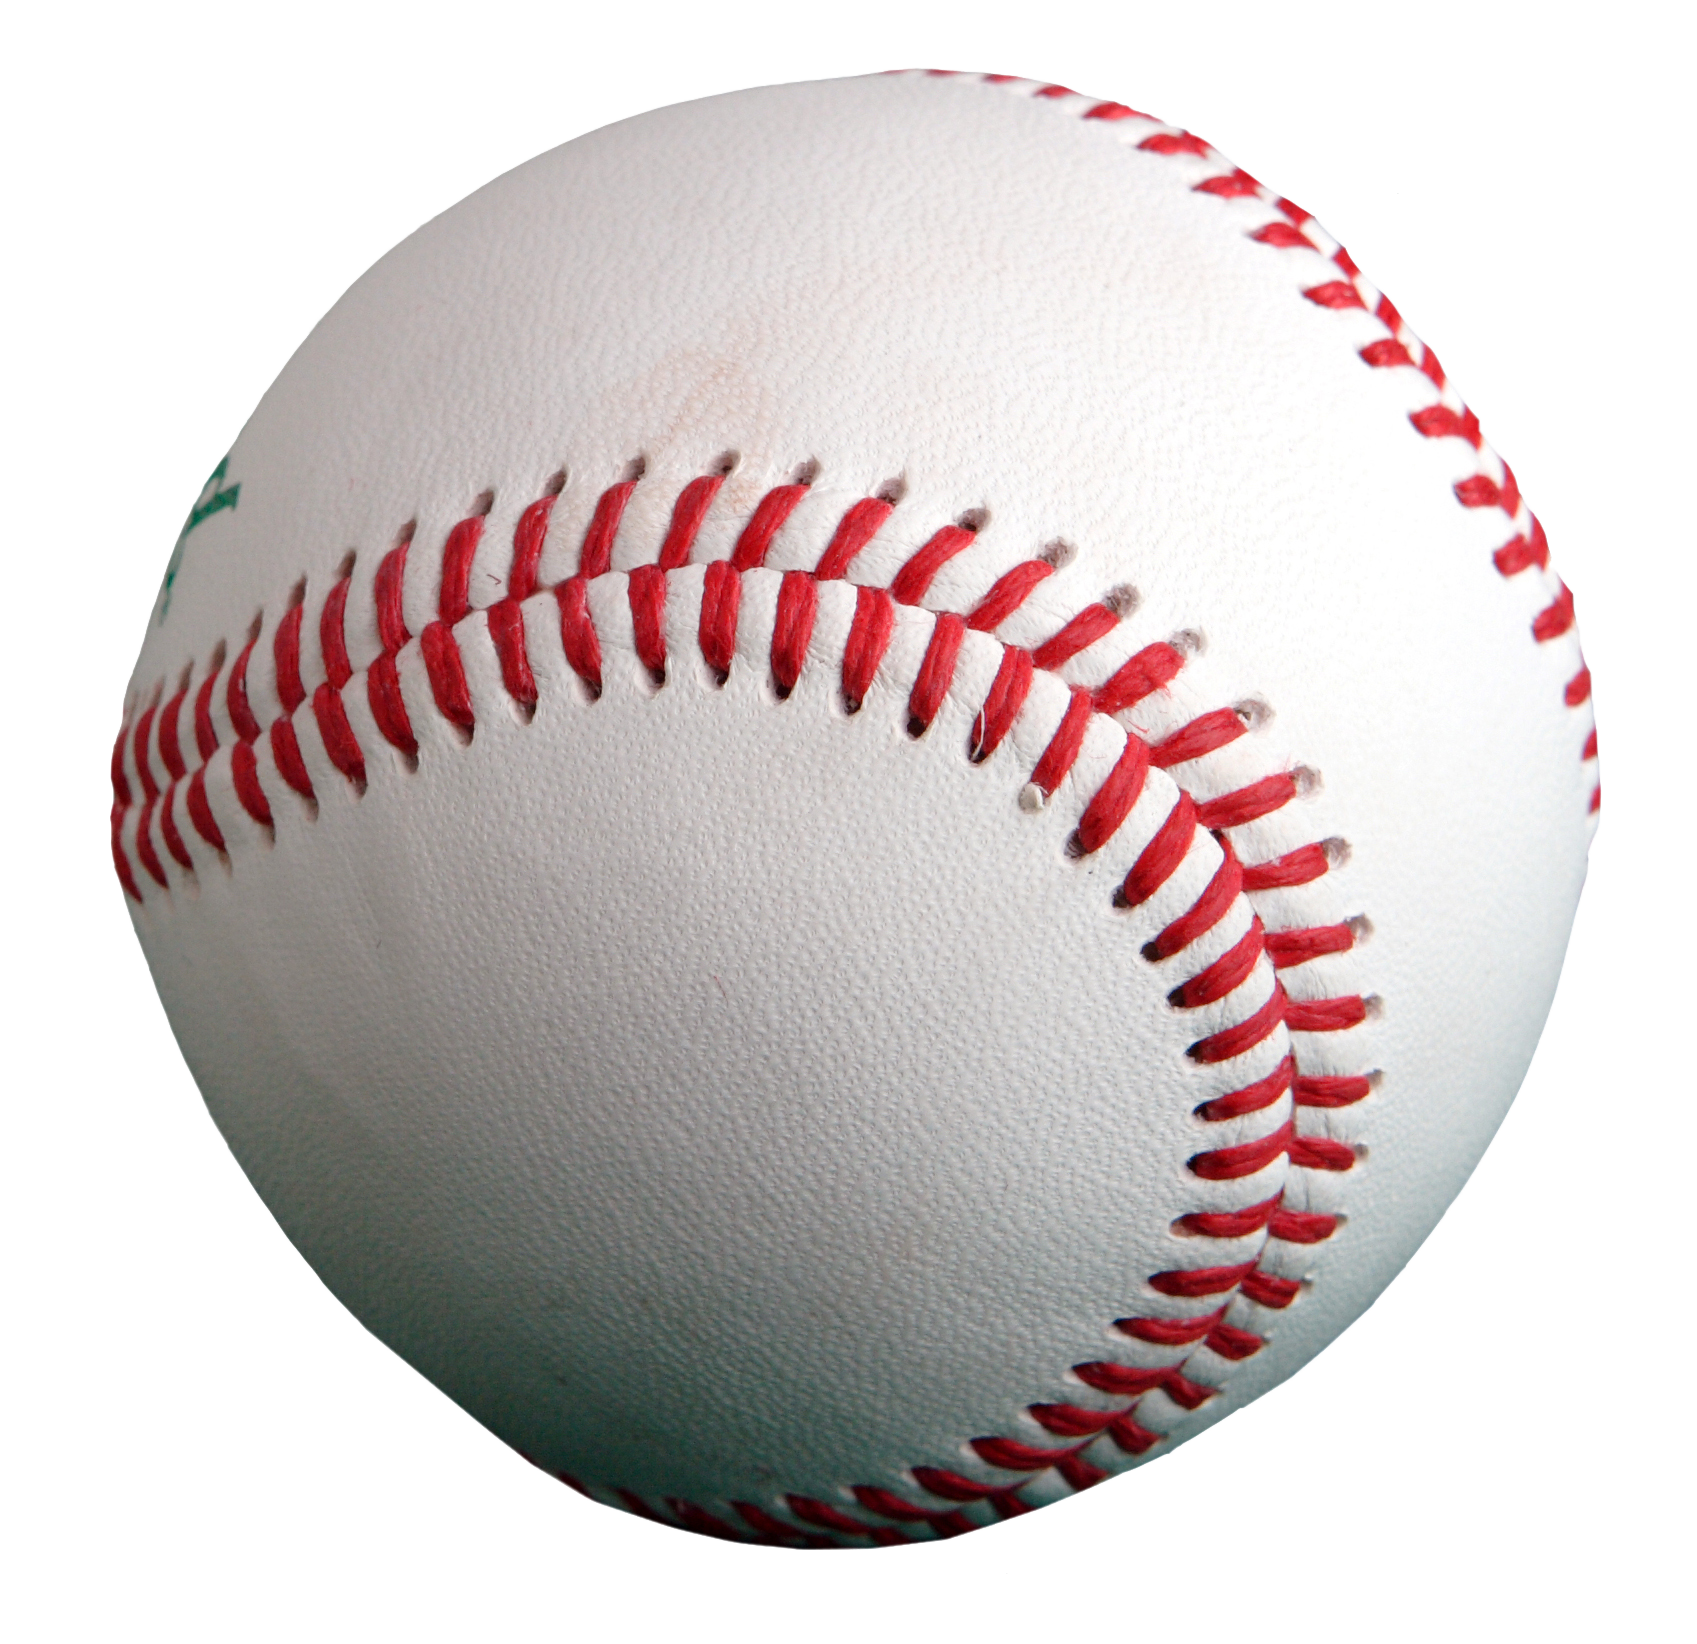 Baseball diamond clipart creative commons clipart black and white download Baseball PNG Transparent Images (63+) clipart black and white download